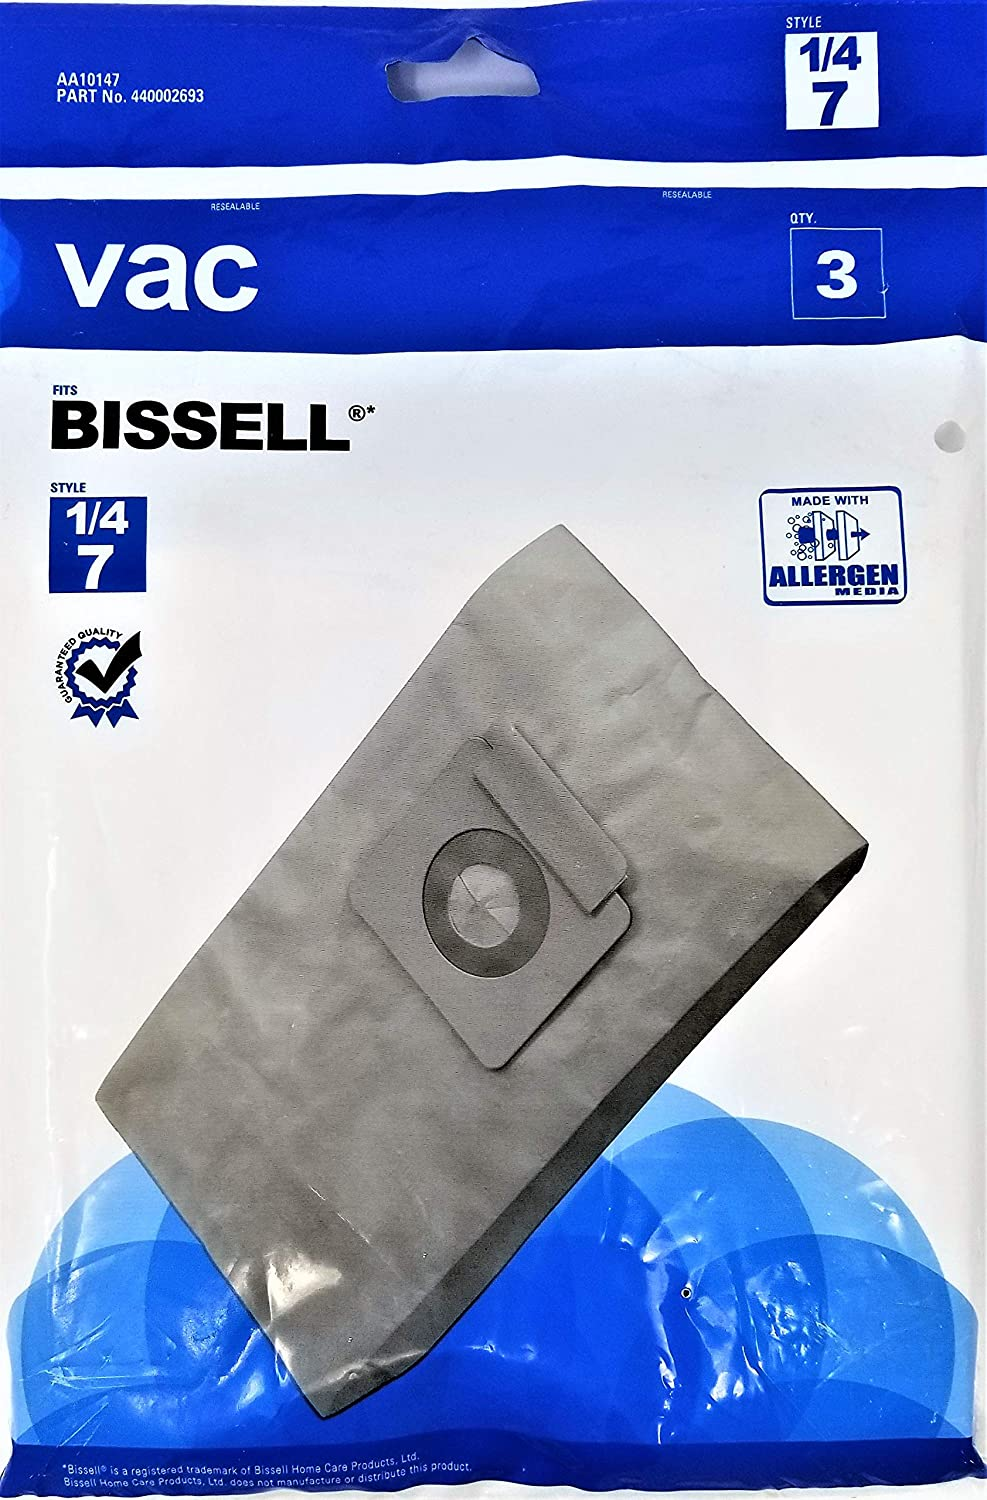 Universal Vacuum Bag Fits Bissell 1/4 7